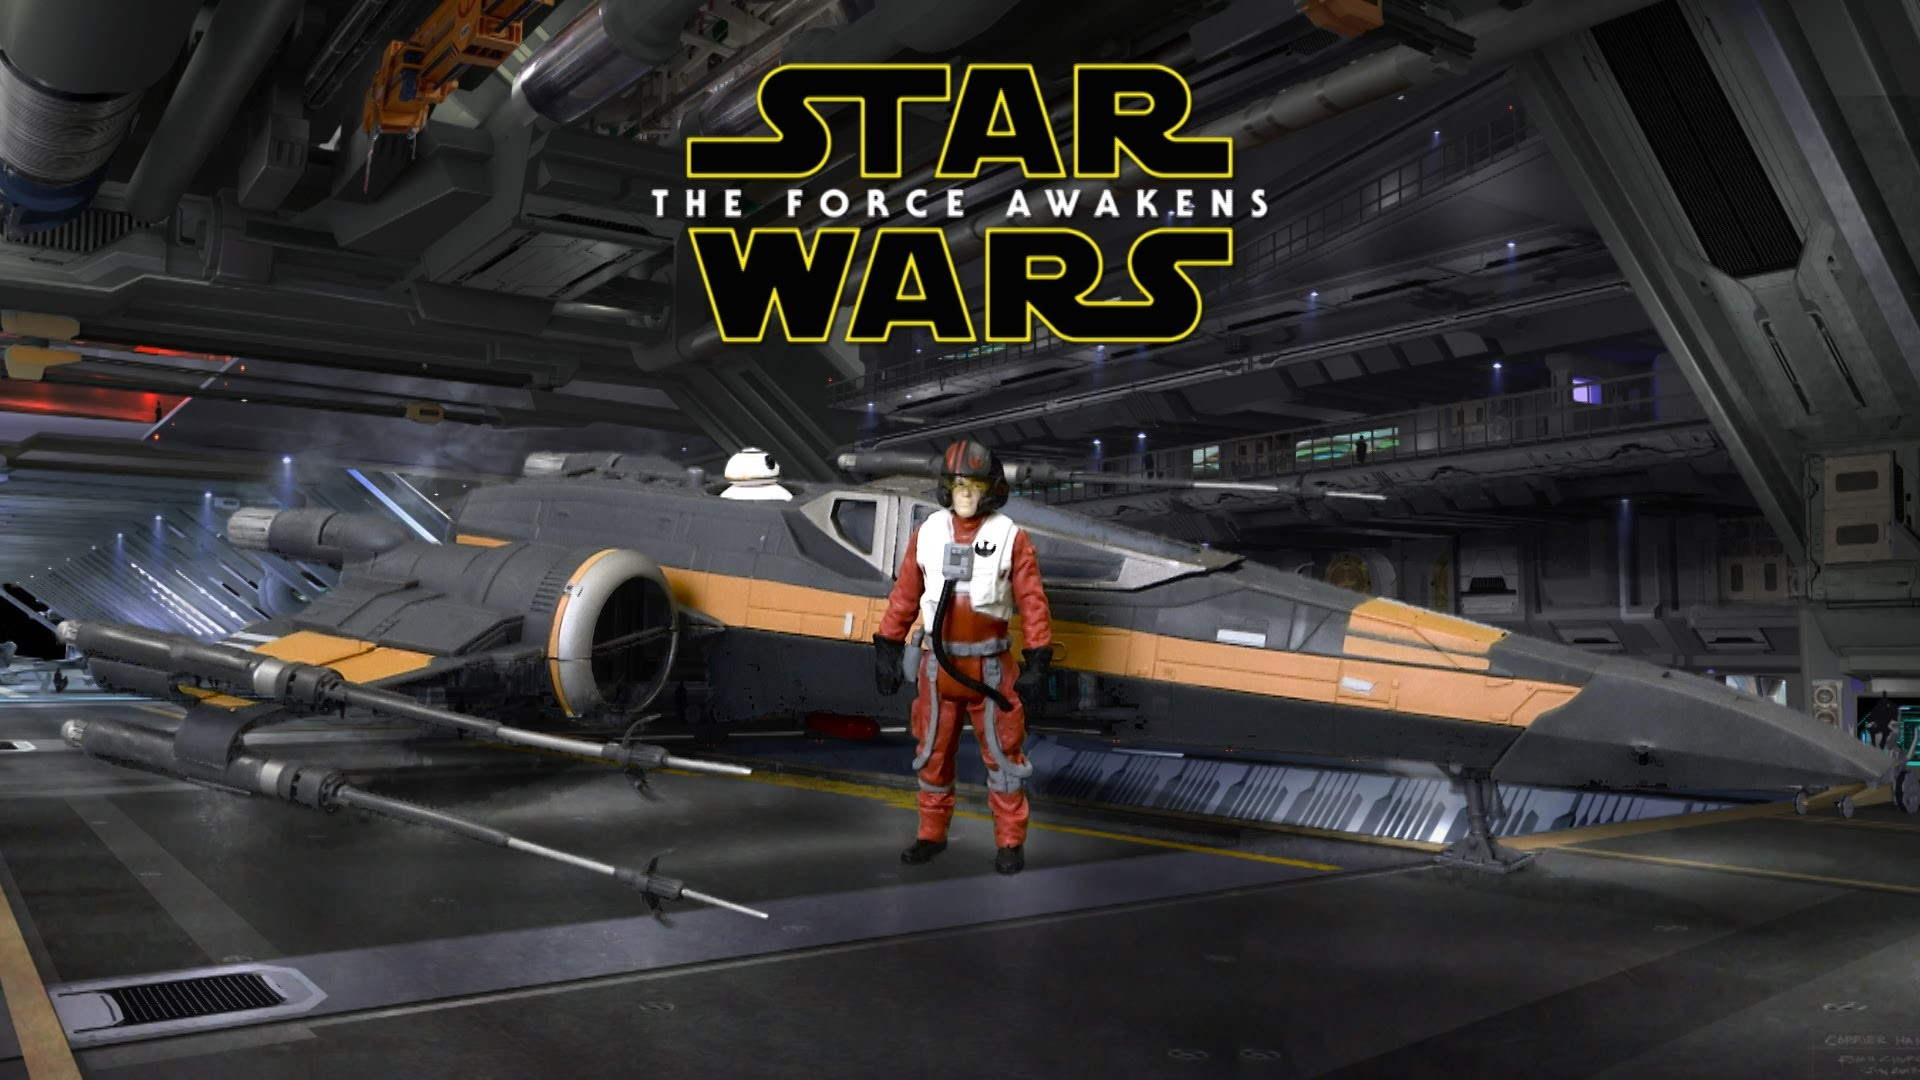 1920x1080 Star Wars The Force Awakens Poe's X-Wing Fighter with Poe Dameron Figure  from Hasbro - YouTube